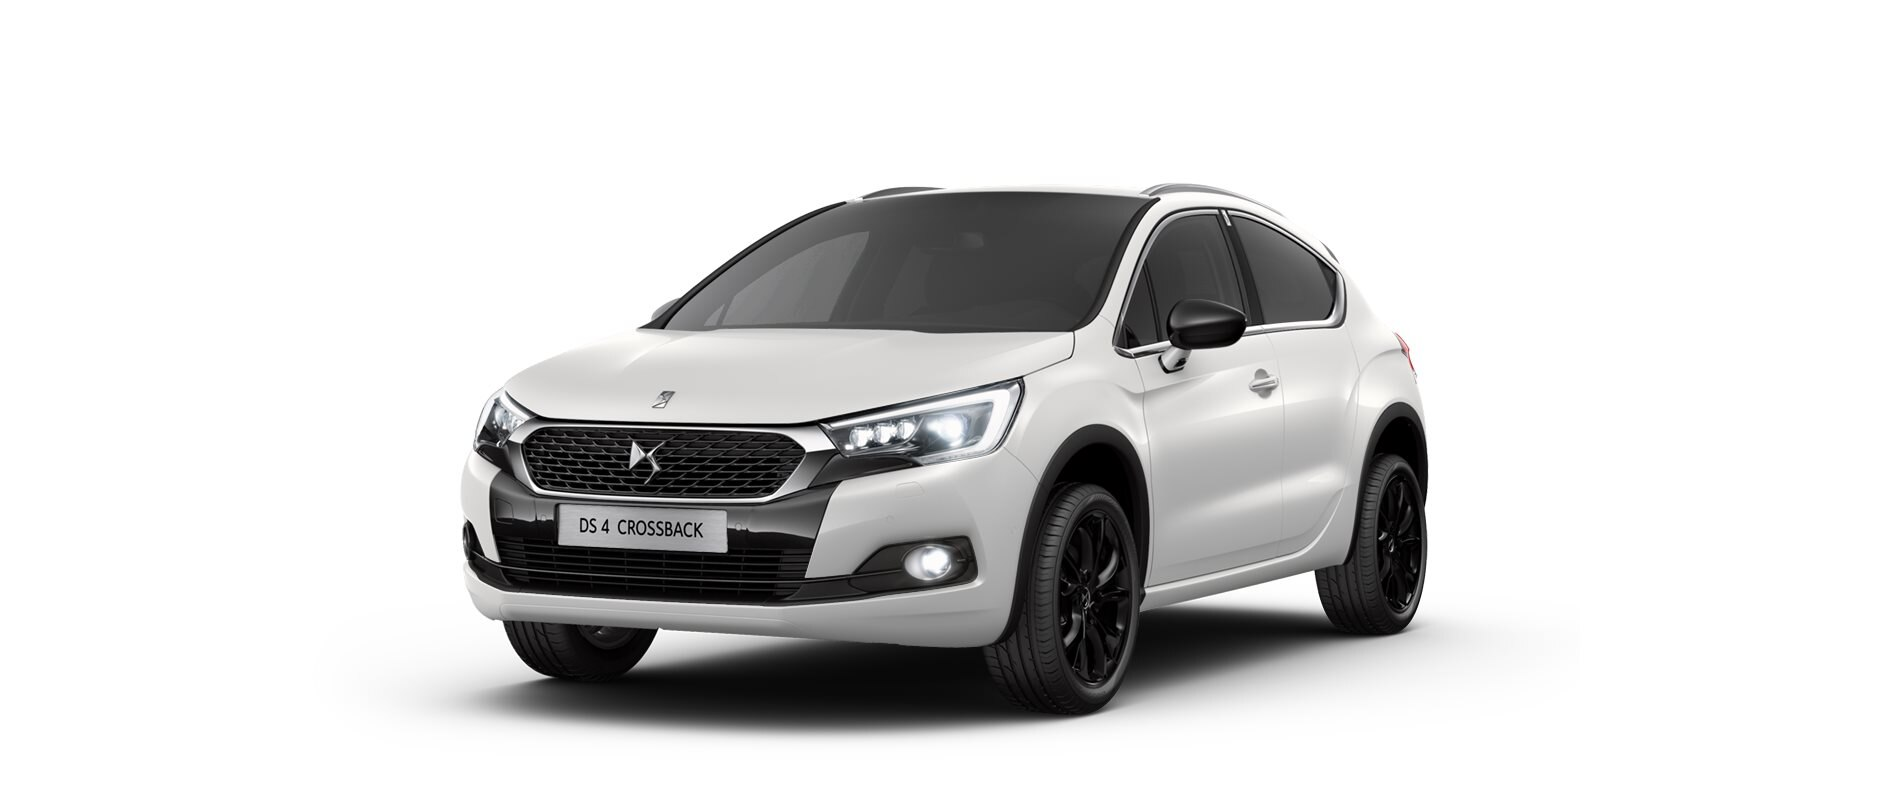 DS 4 Crossback - Pearl White